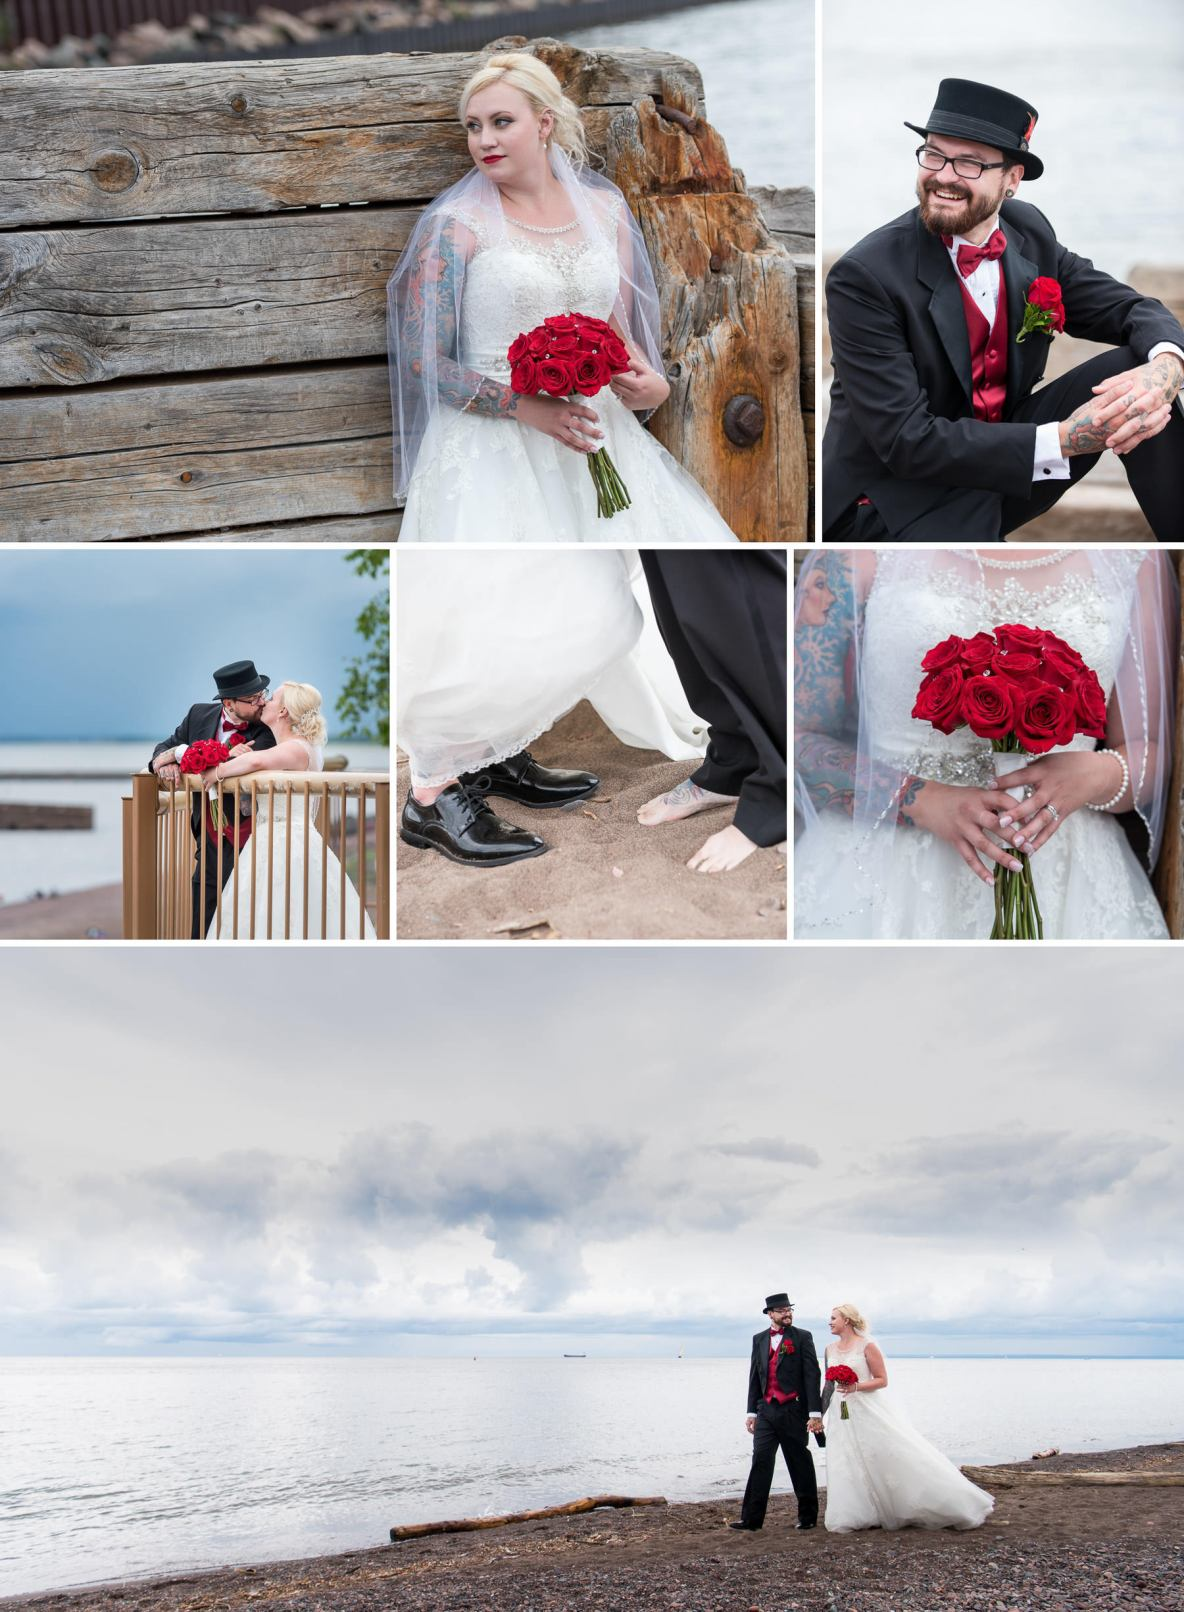 Wedding day moments near Lake Superior.